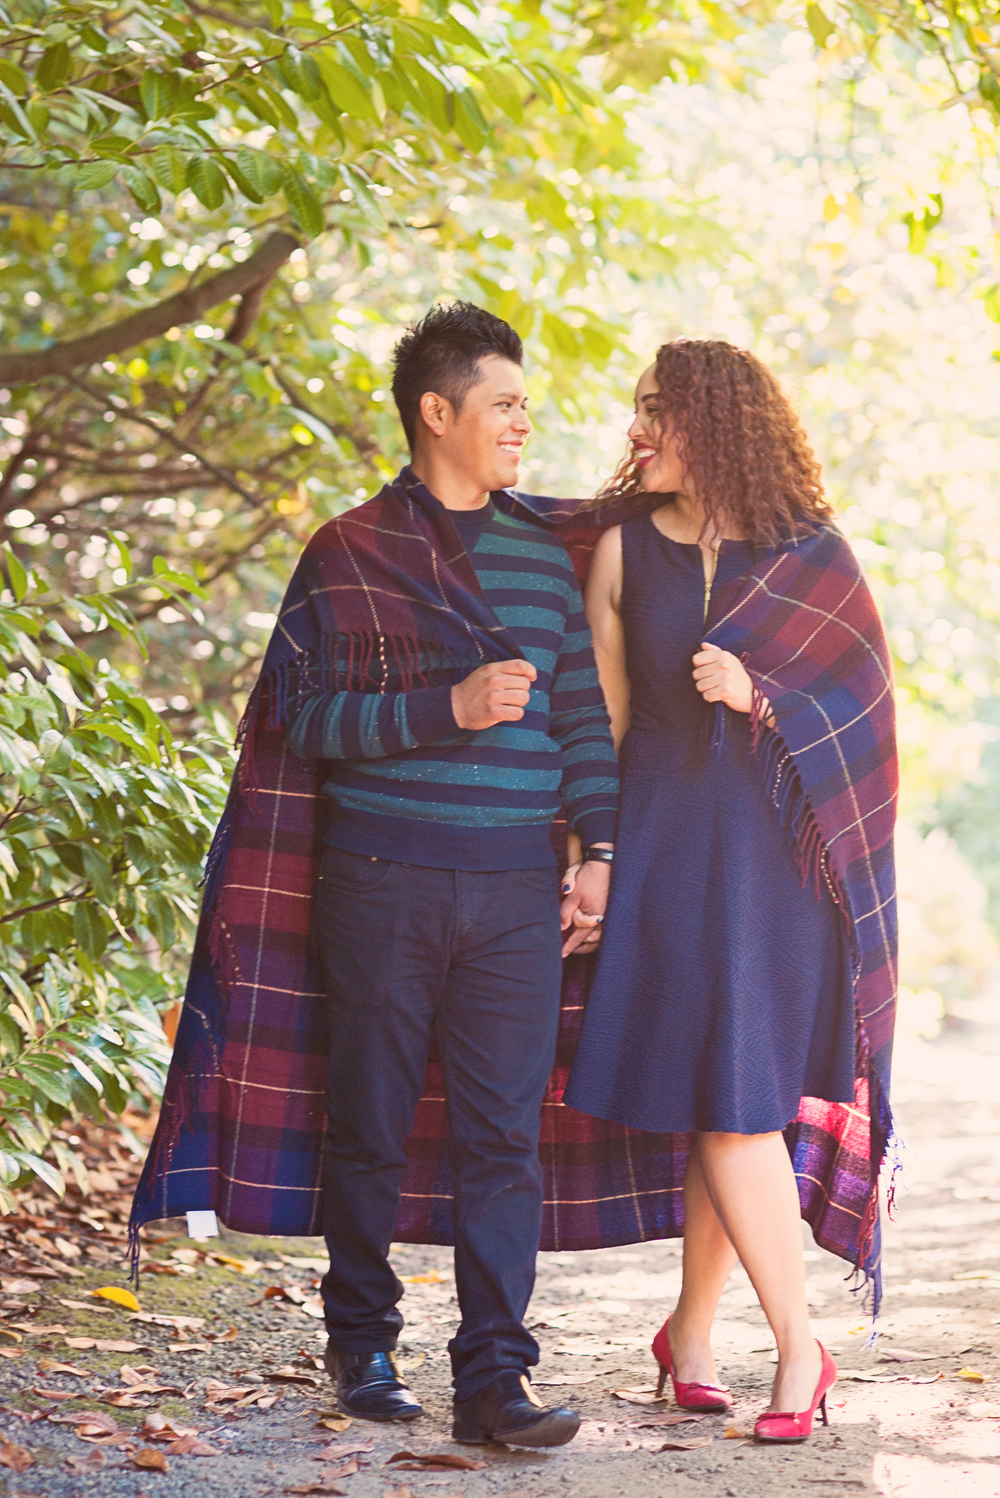 Seattle-Wedding-Photographer,-Kelsey-Lane-Photography_Esther-+-Israel_Kubota-Park-Engagement-2015-44.jpg